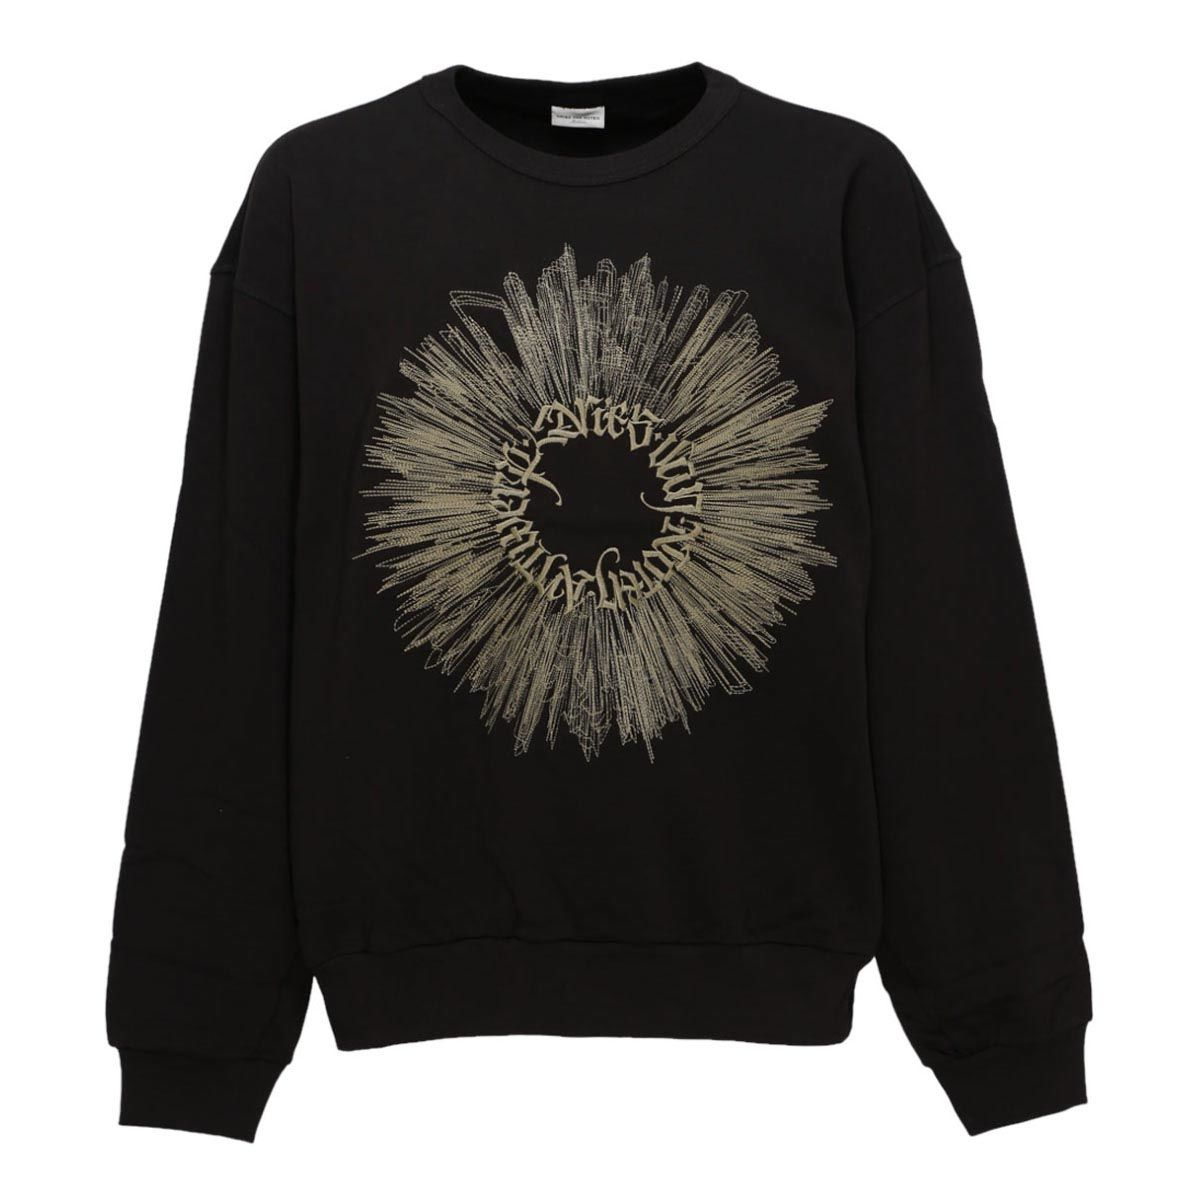 Dries Van Noten Hoxton Sweatshirt